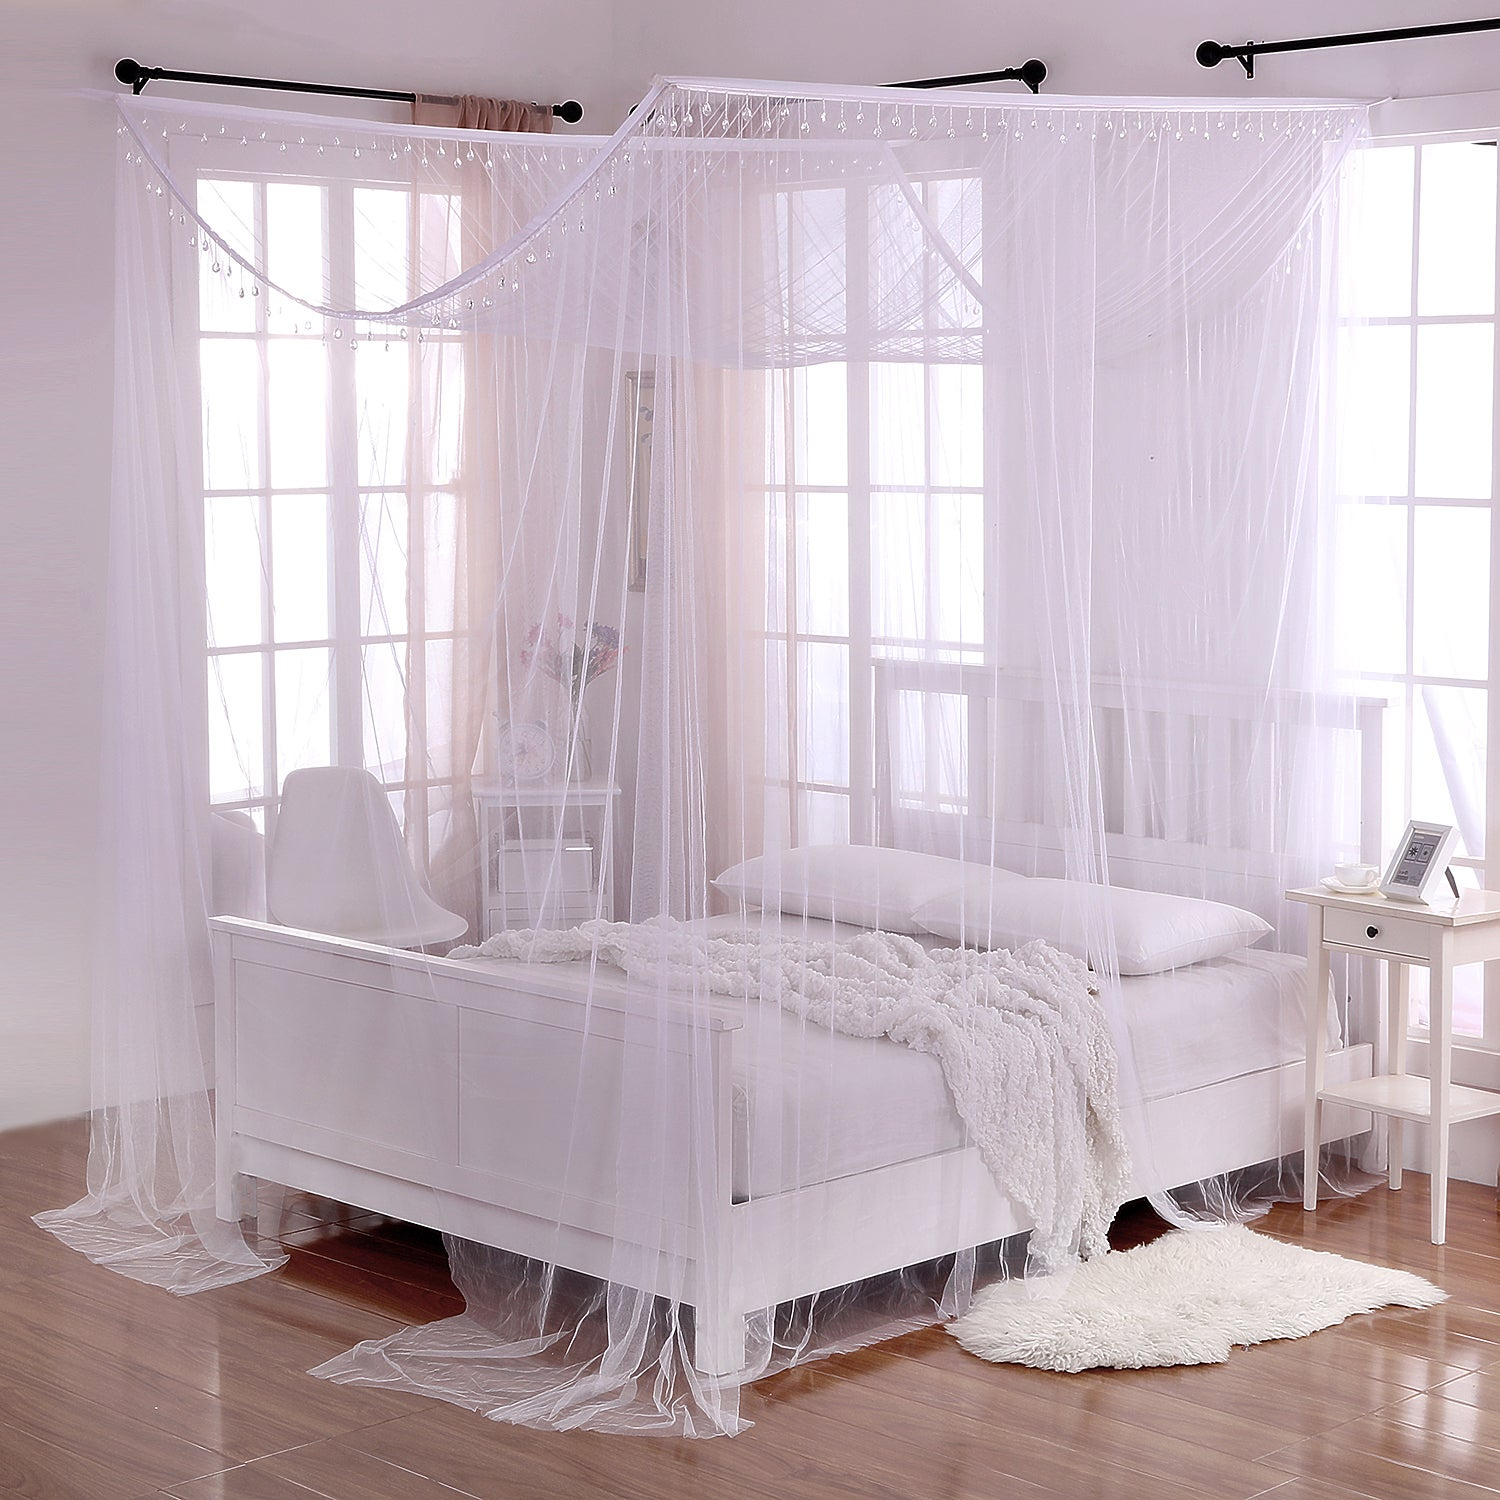 - Shop Palace Crystal Accent White Polyester 4-Post Bed Canopy